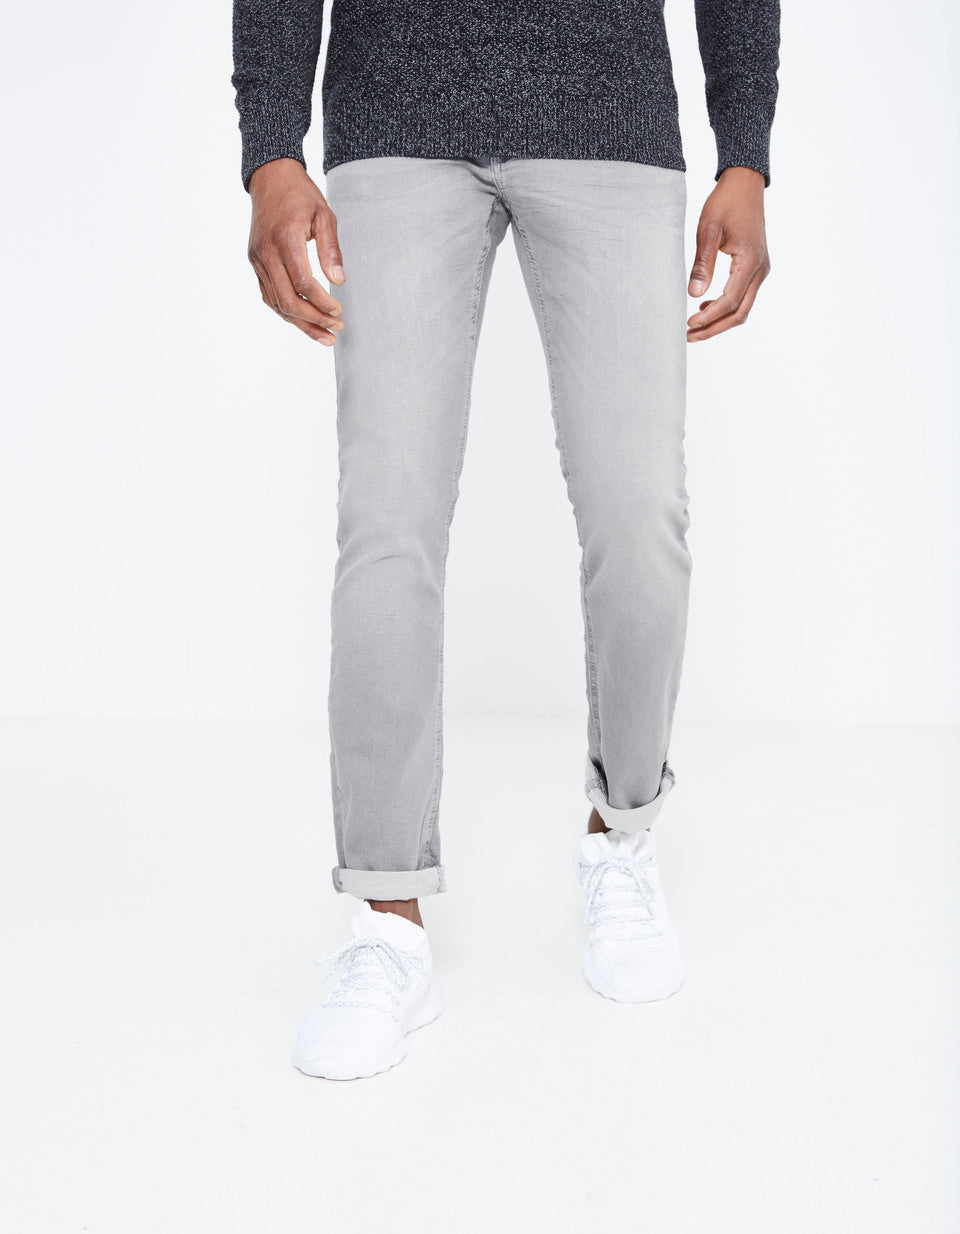 CLO - Grey 'Slim fit' Jeans